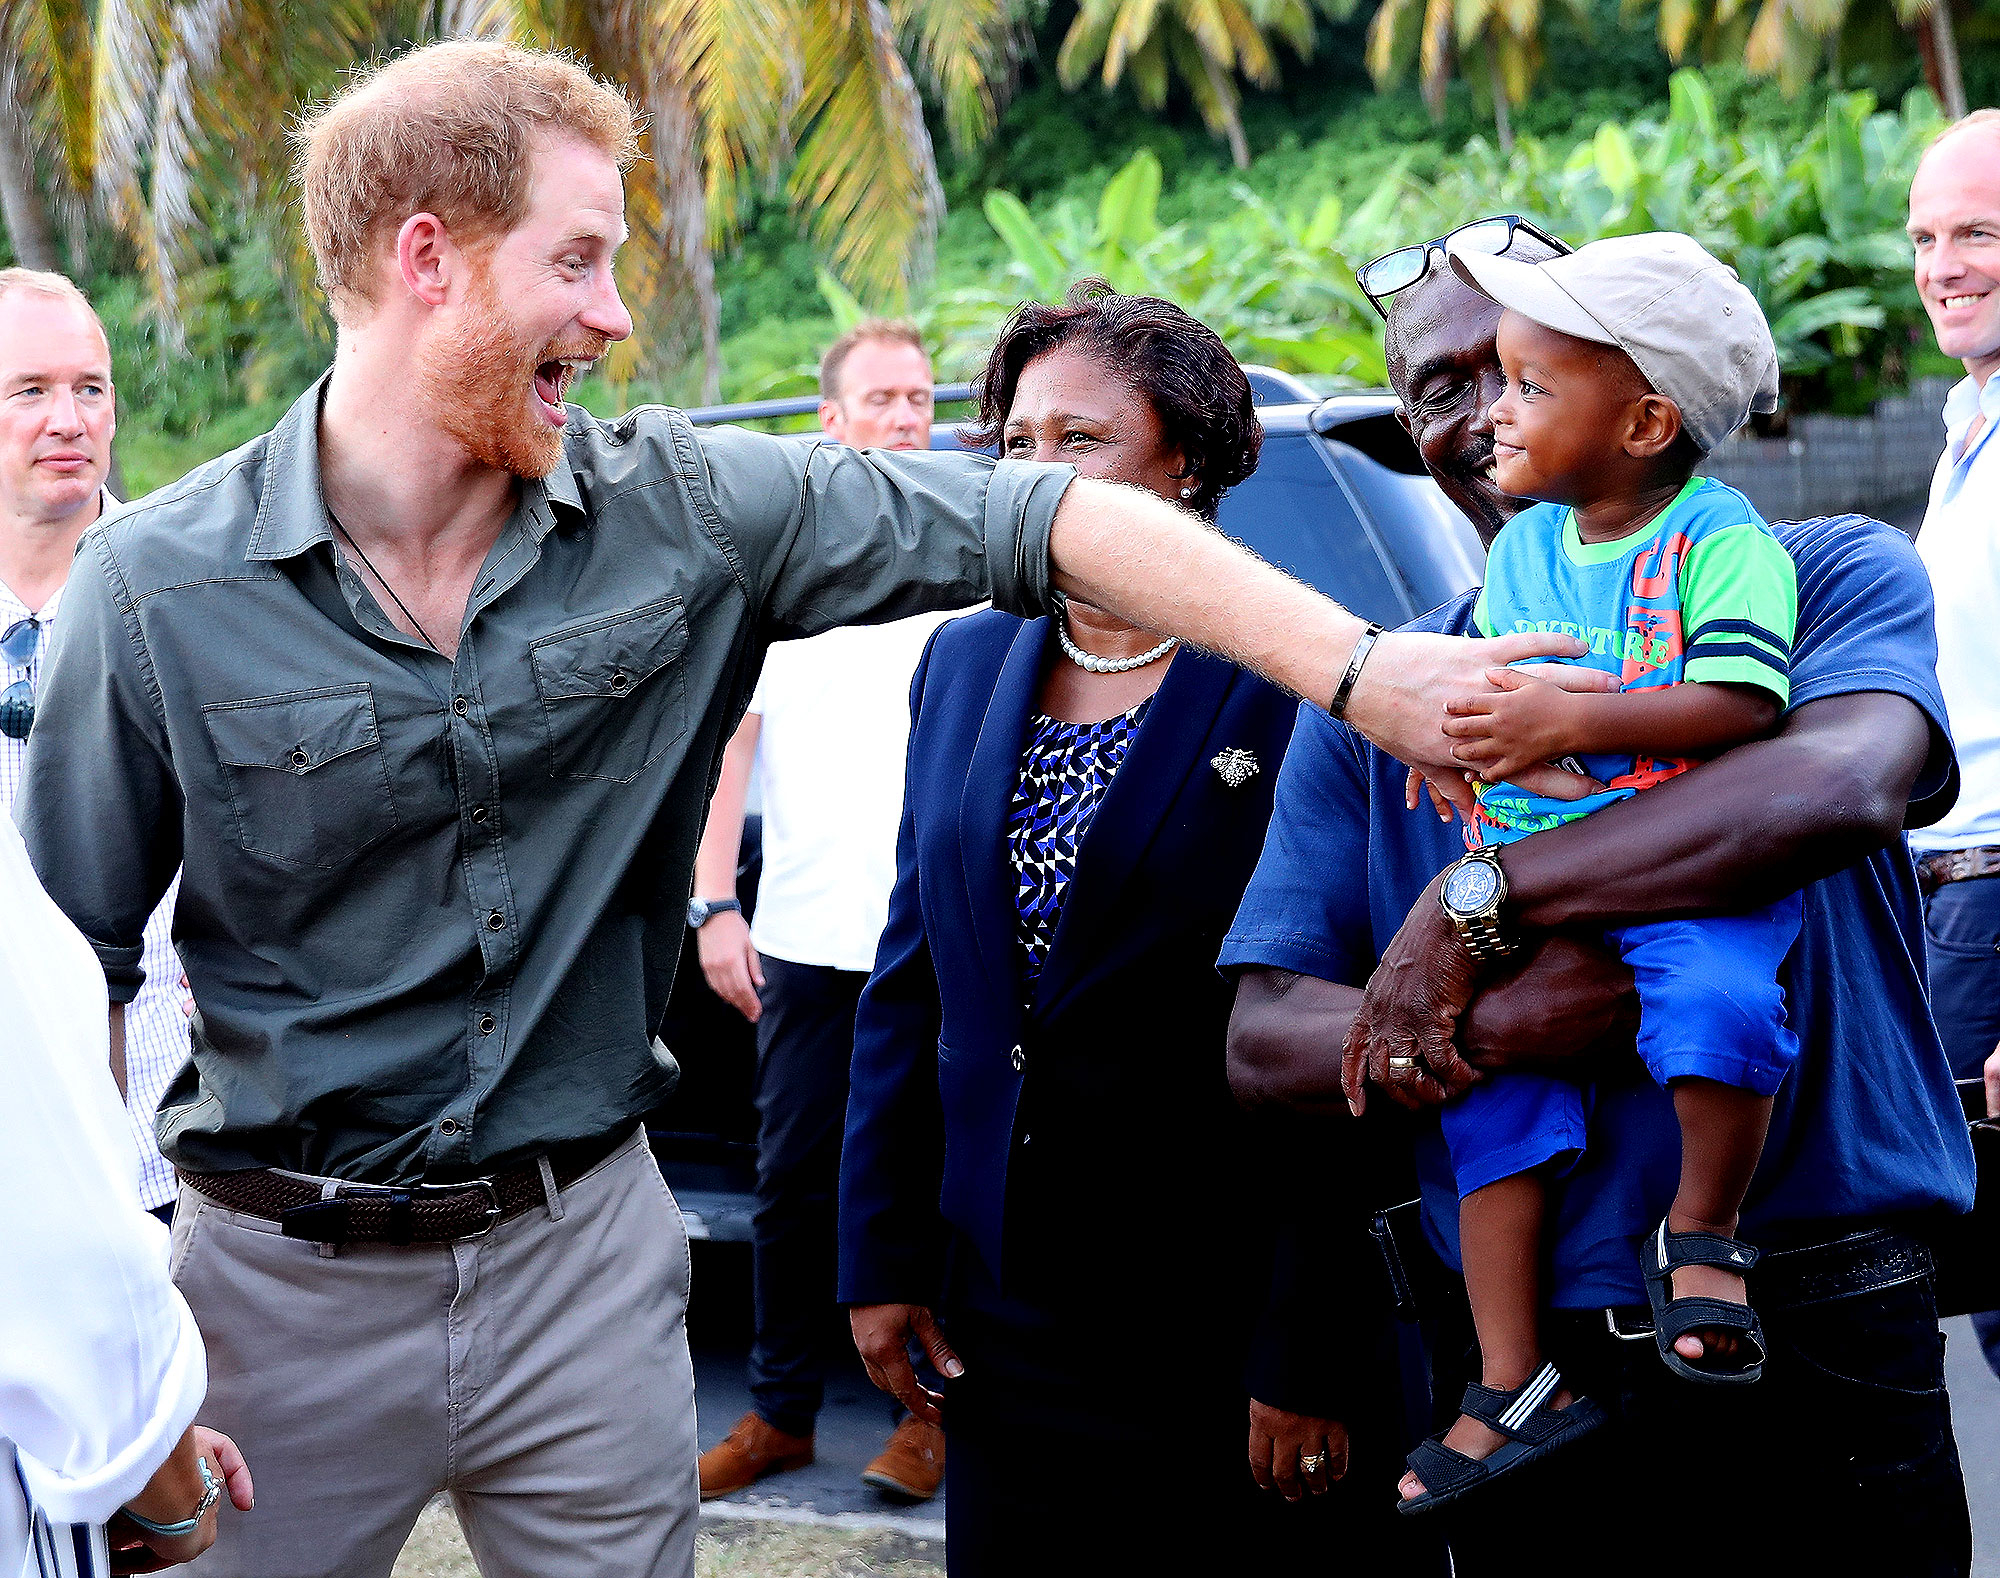 Prince Harry - During a November 2016 official visit to the Caribbean, Prince Harry hung out with a local boy named Jyasi Junior while the two experienced the Turtle Conservation Project.